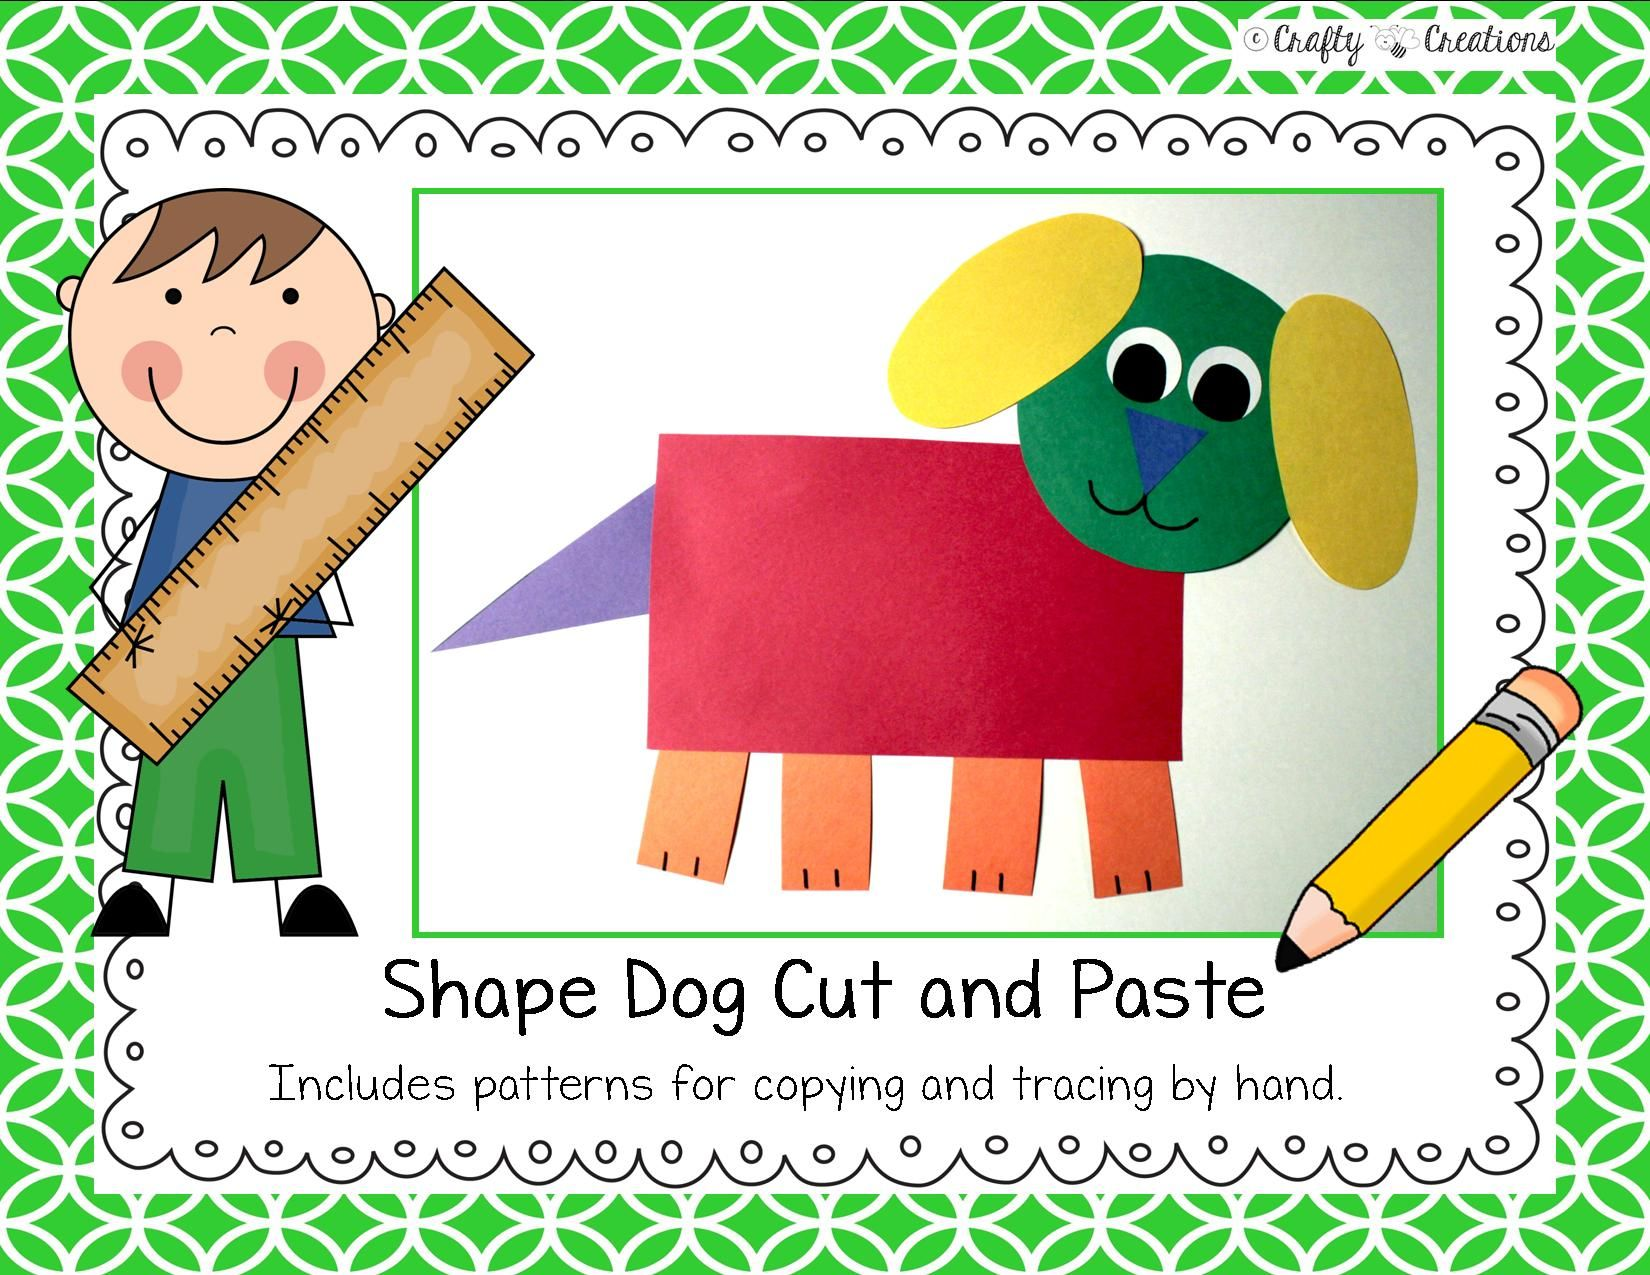 Shape Dog Cut And Paste That Includes Patterns For Copying